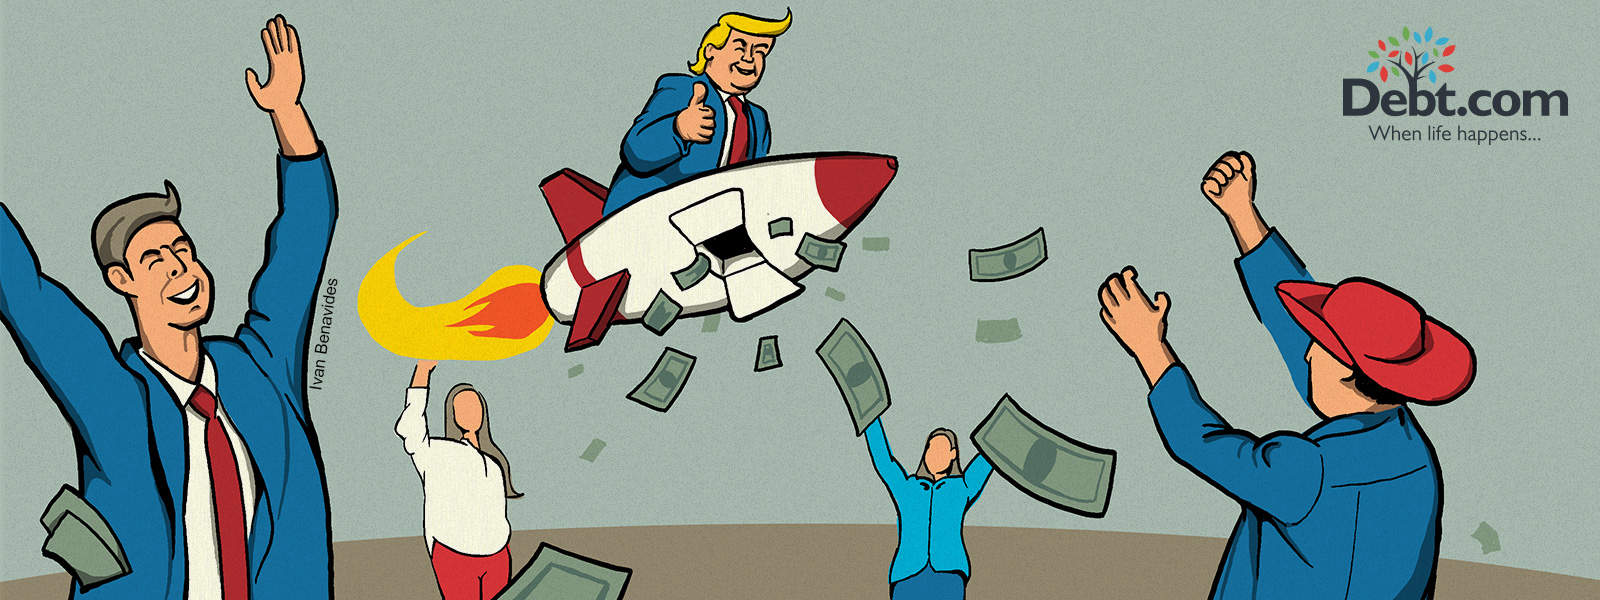 Donald Trump rides a rocket throwing tax cash everywhere (illustrated)